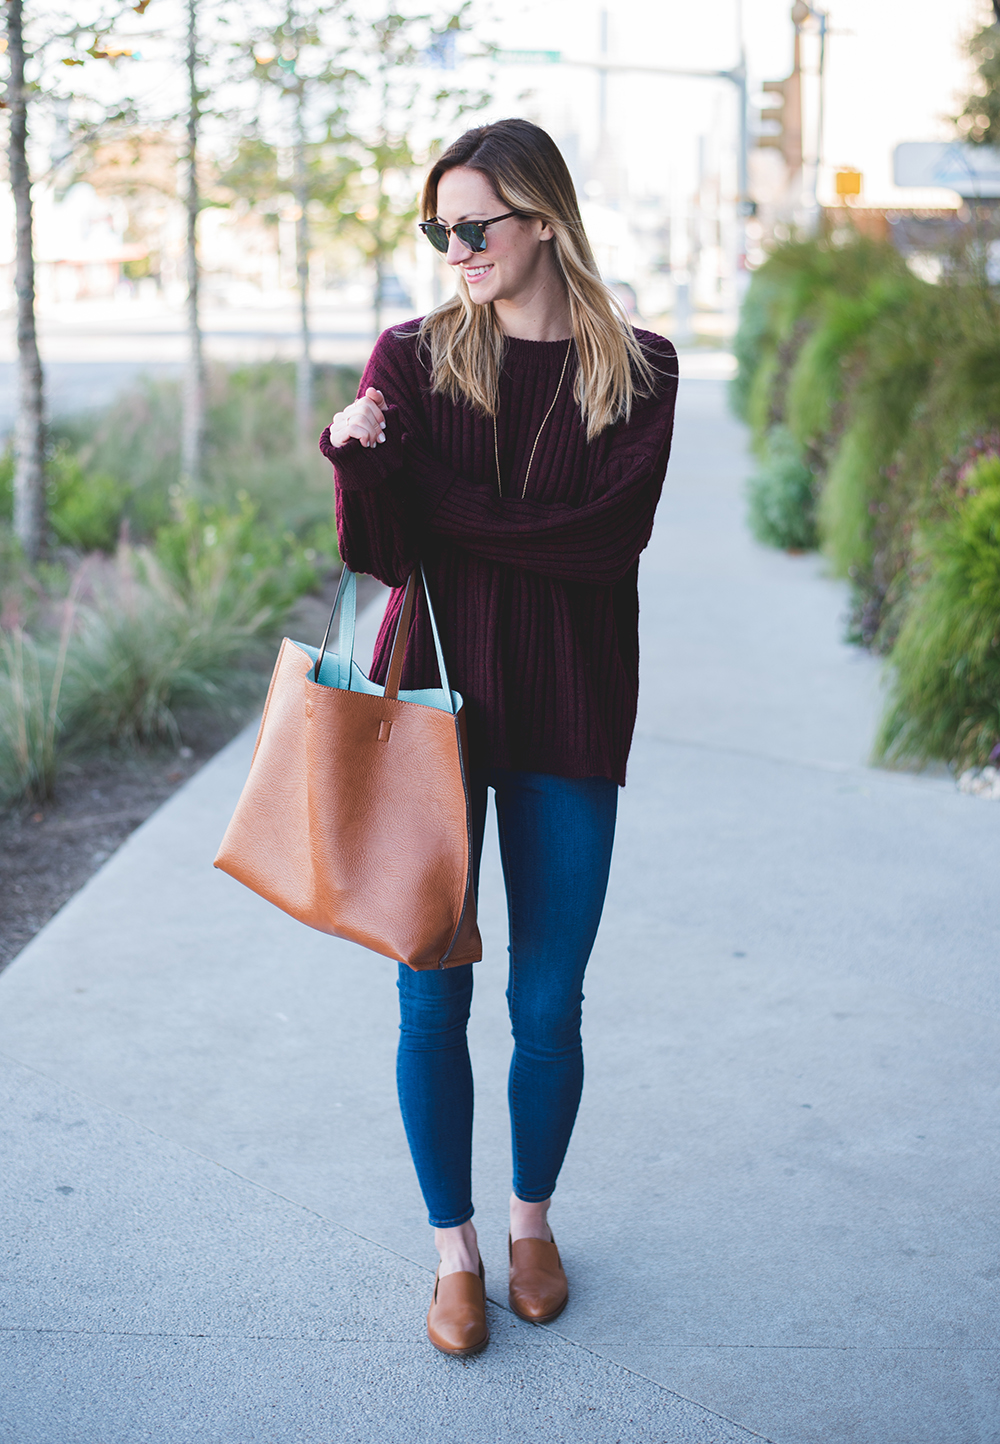 livvyland-blog-olivia-watson-oversize-wine-burgundy-knit-chunky-grandpa-sweater-austin-texas-fashion-blogger-olivia-watson-kathryn-frazer-photography-south-congress-hotel-madewell-tan-loafers-flats-10